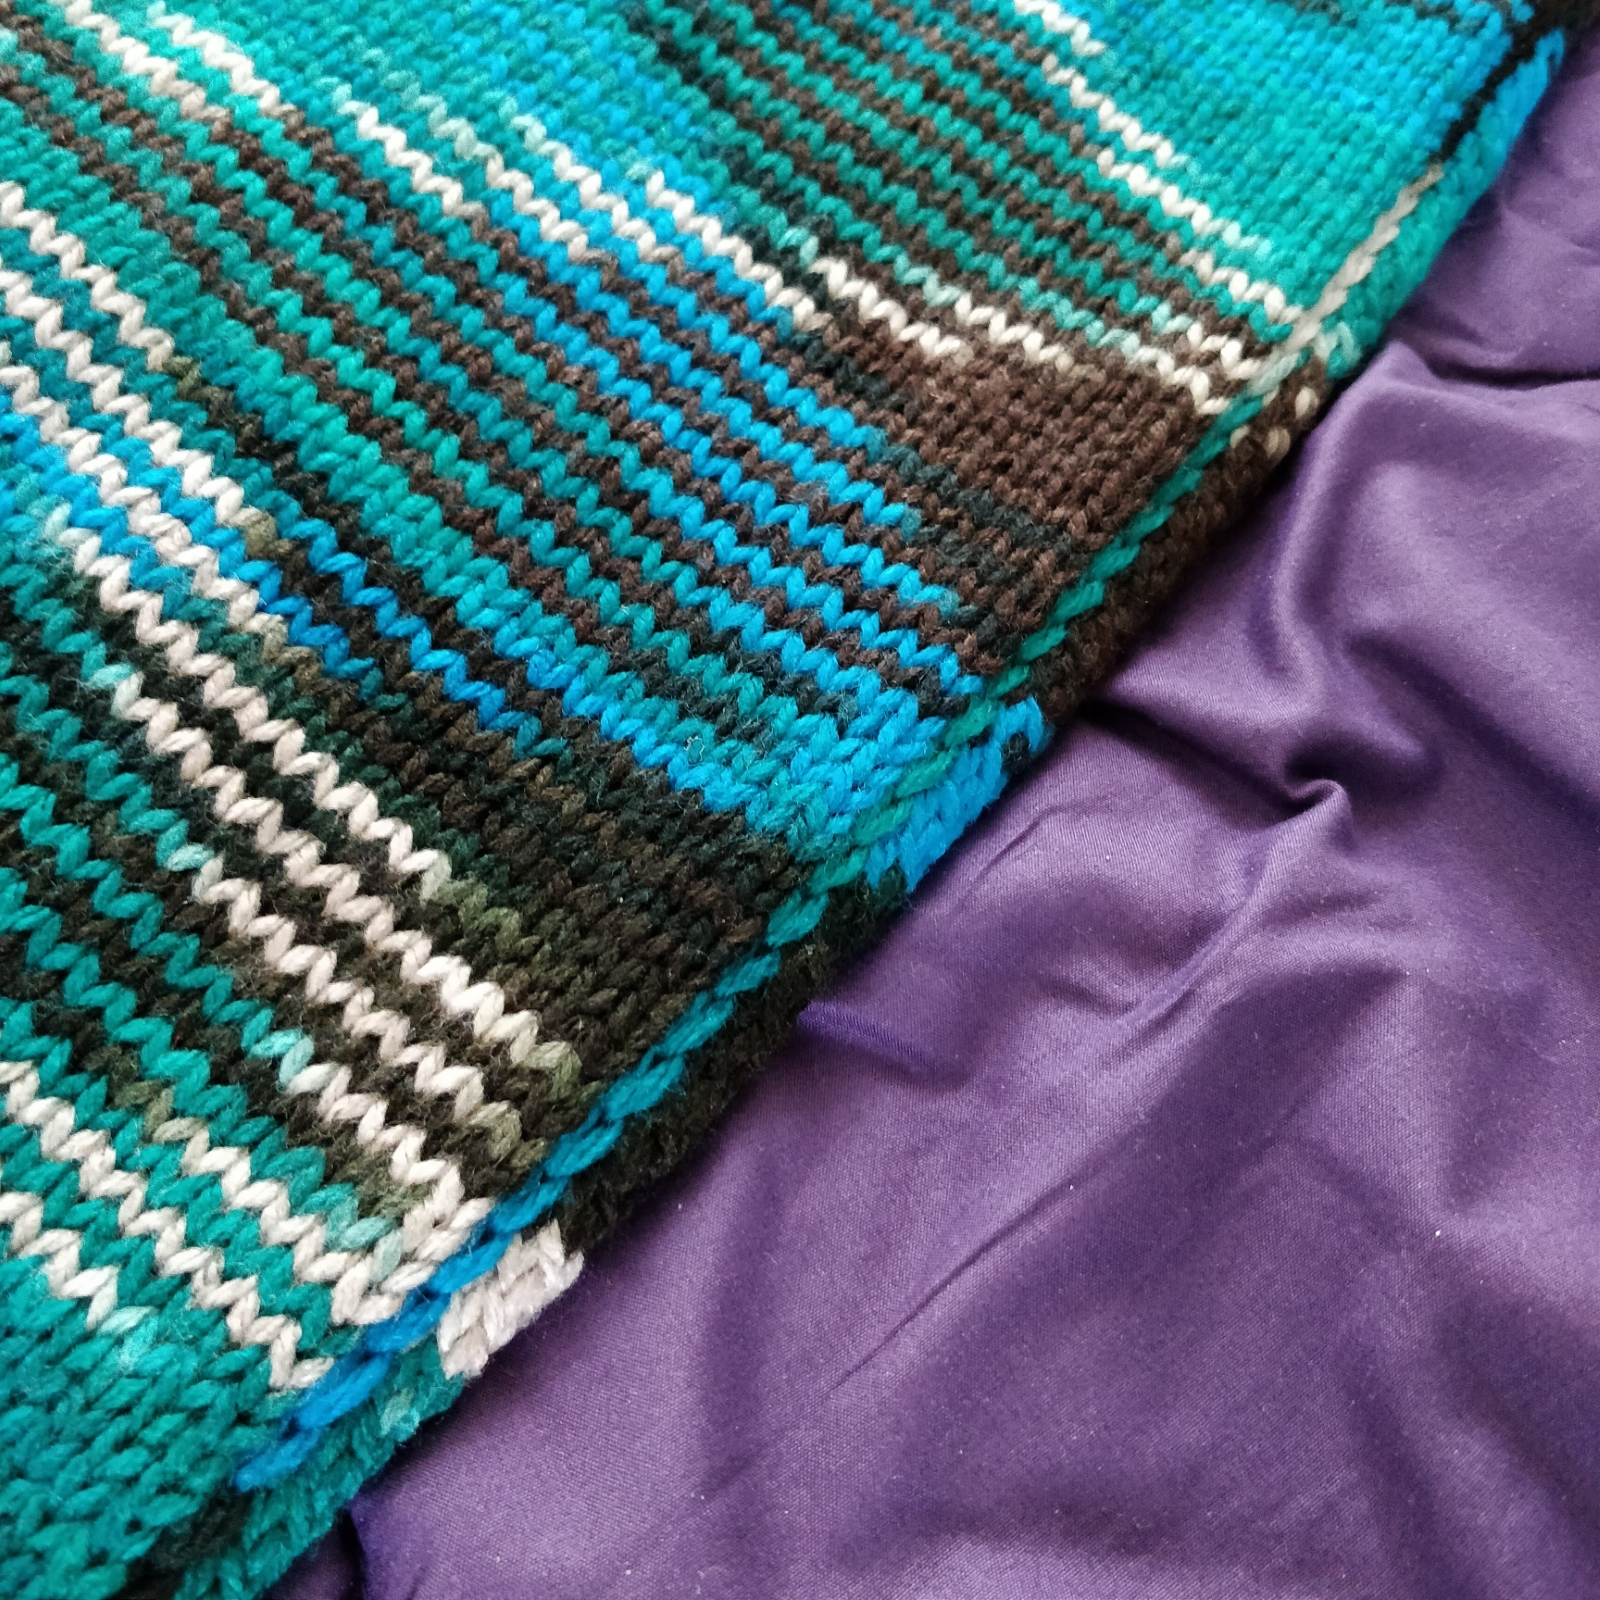 Closeup of the detail of the edge seam of a teal and brown knit wrap.